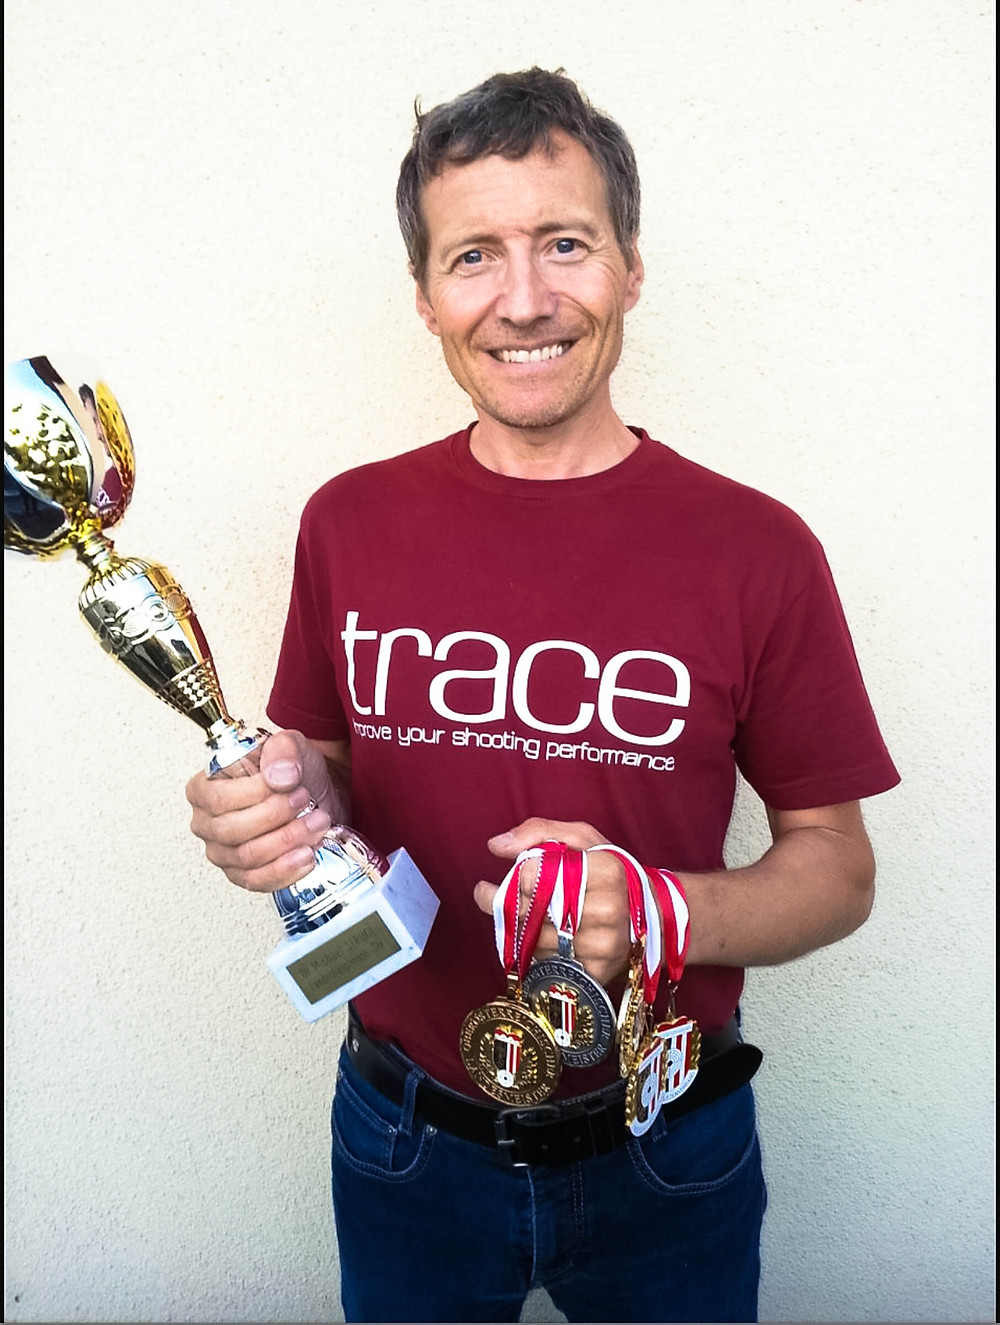 (TRACE Shooting Blog) Harald Schimboek: Shooting Tips From Austrian Rifle And Crossbow Champion - 2